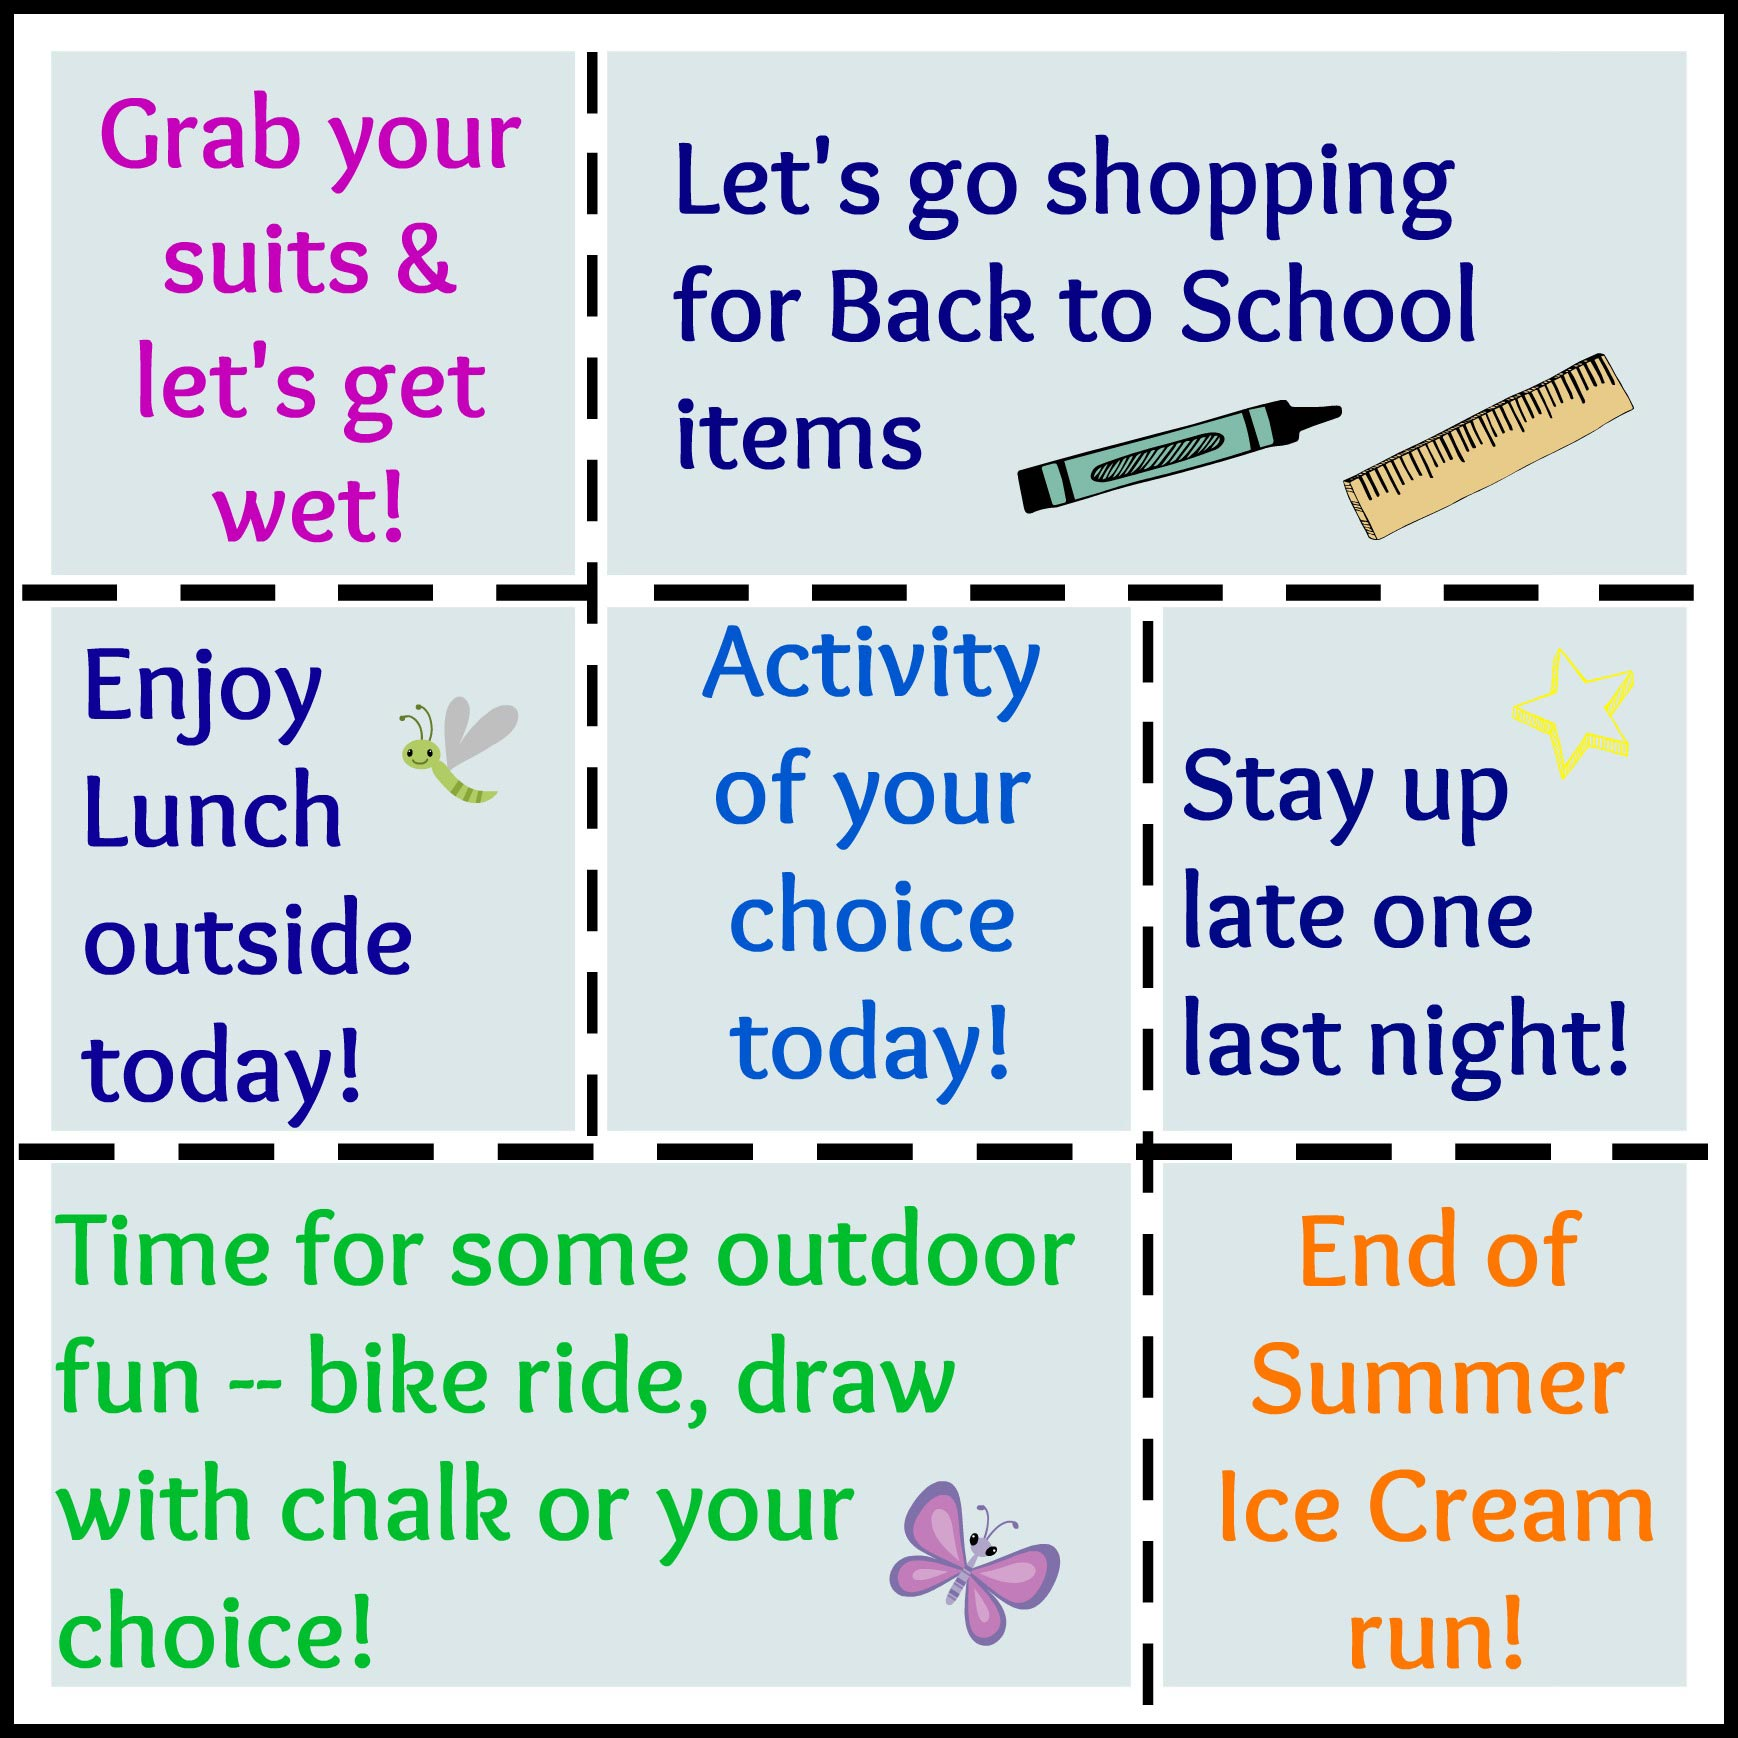 summer fun coupons for kids